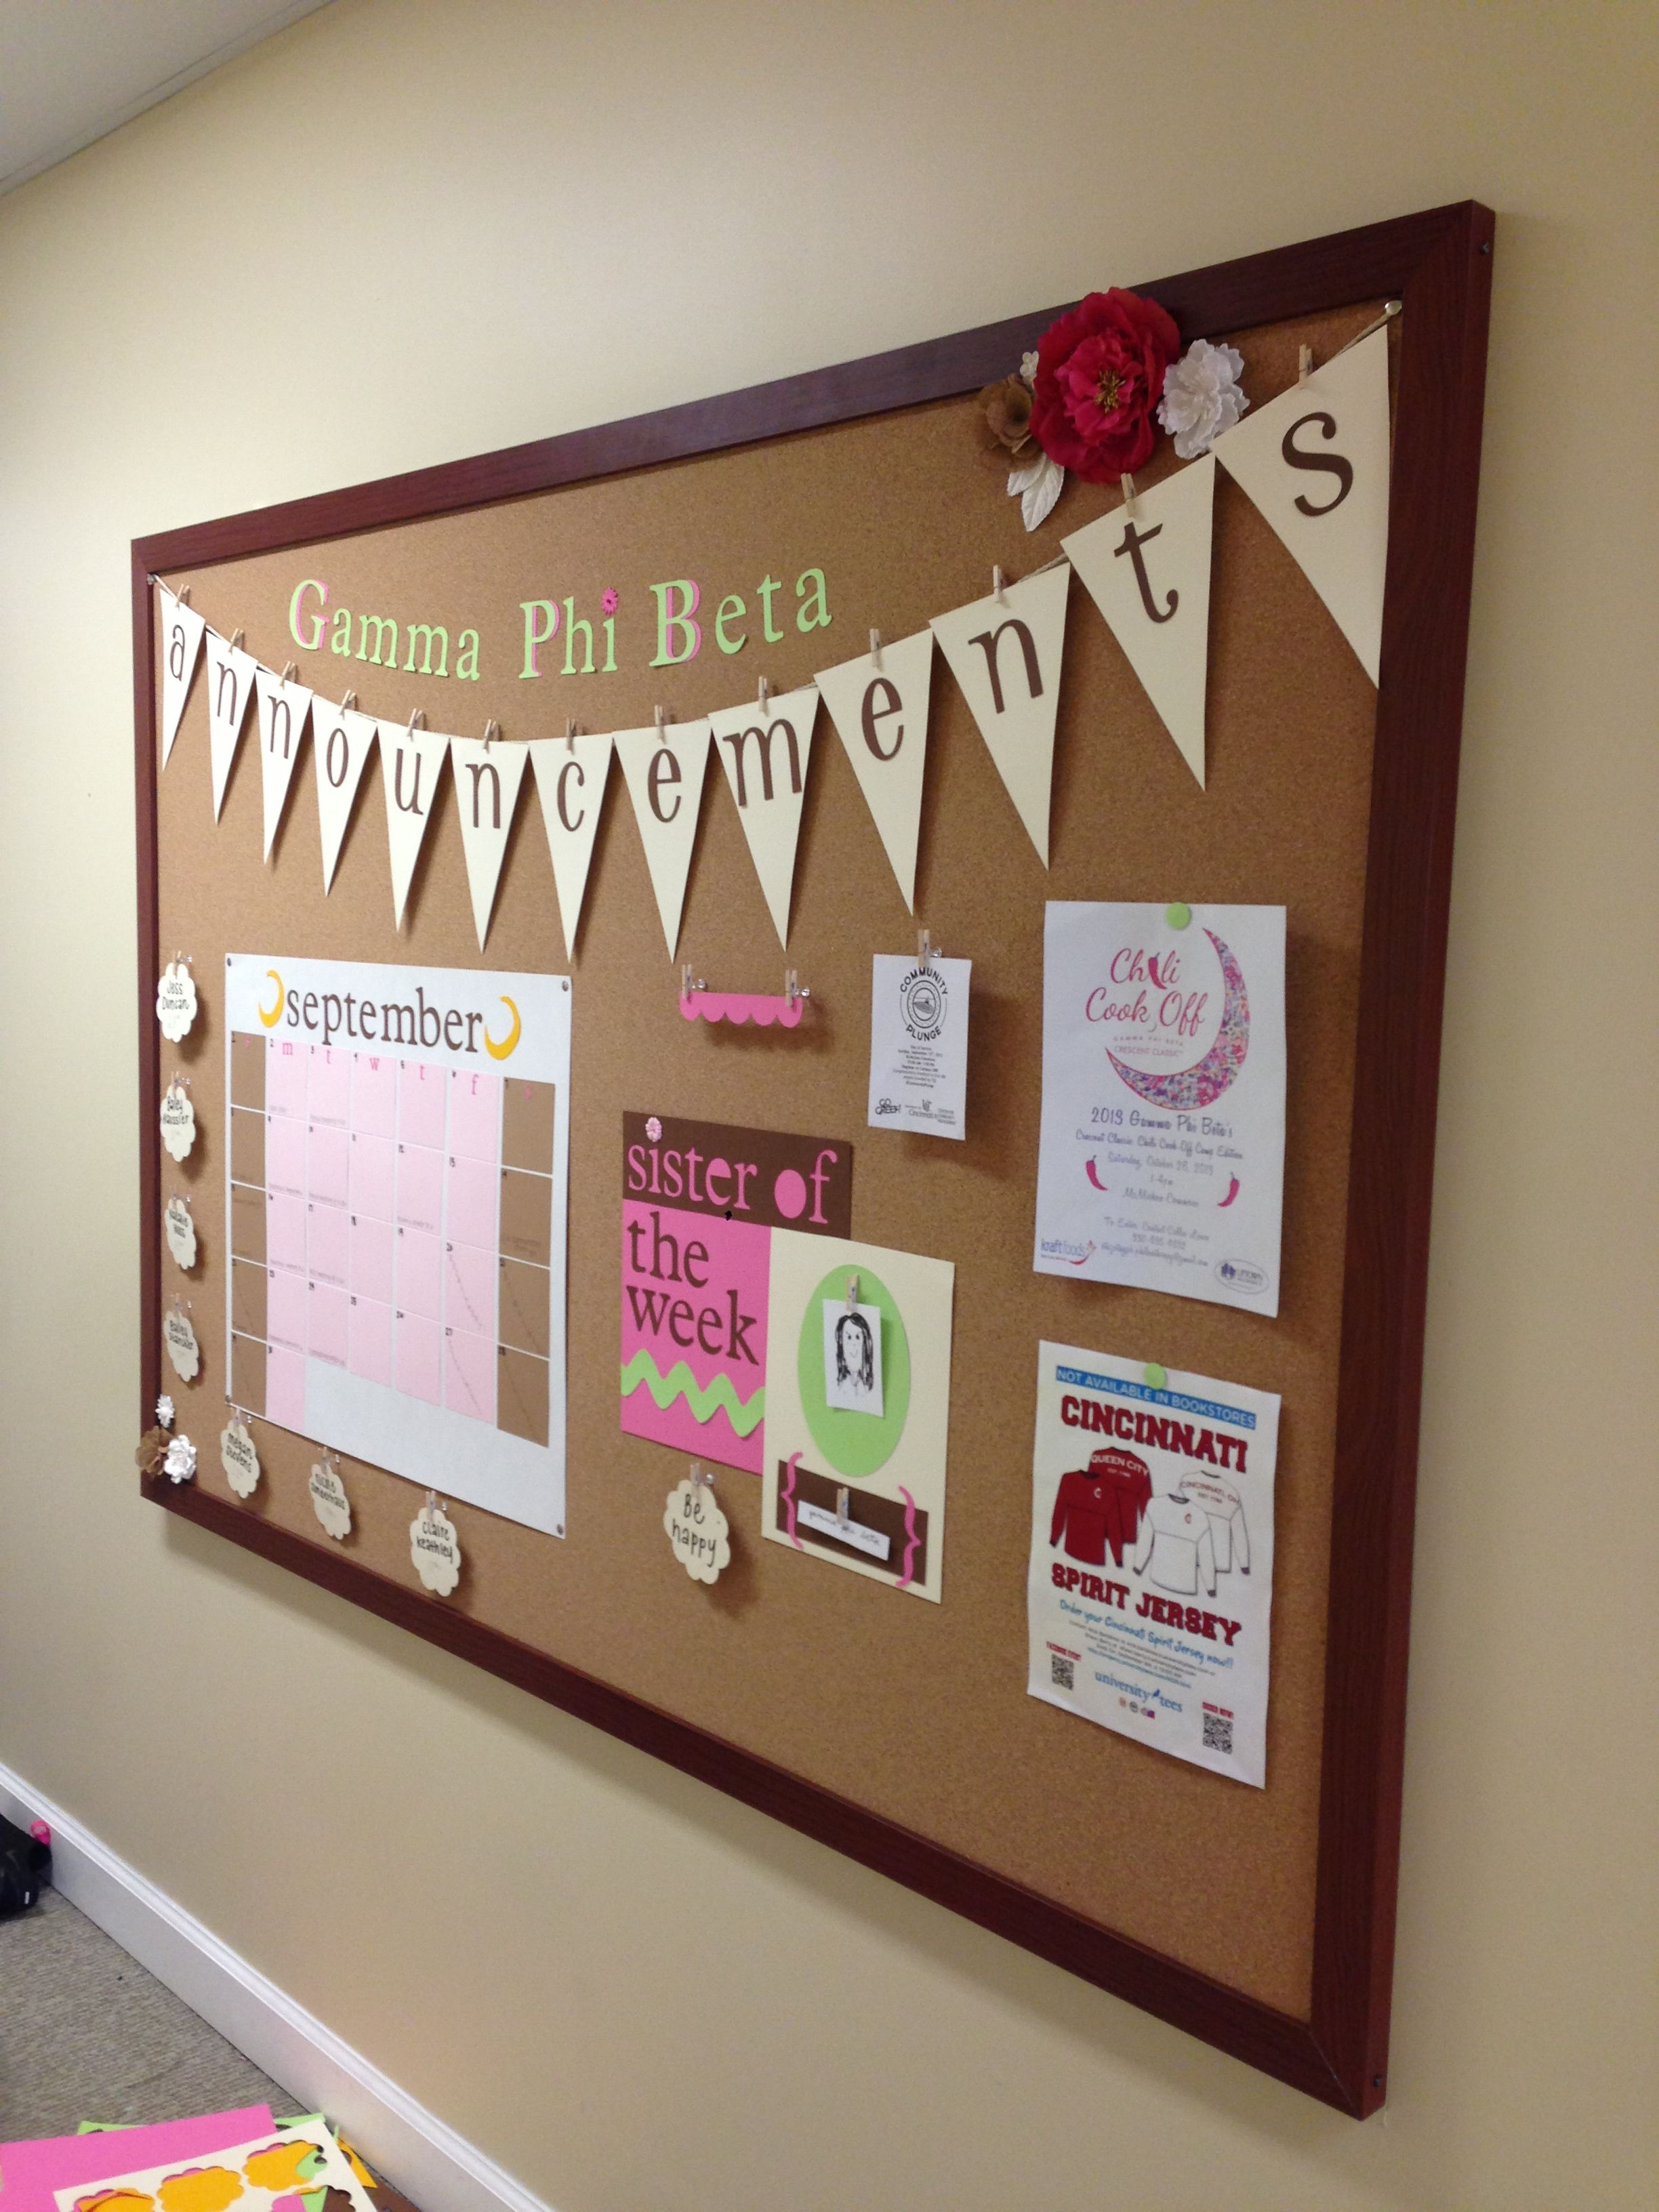 Is Your Corkboard Boring You Dress It Up Find And Save About Cork Boards Ideas That Like In This Article See More Study Room Decor